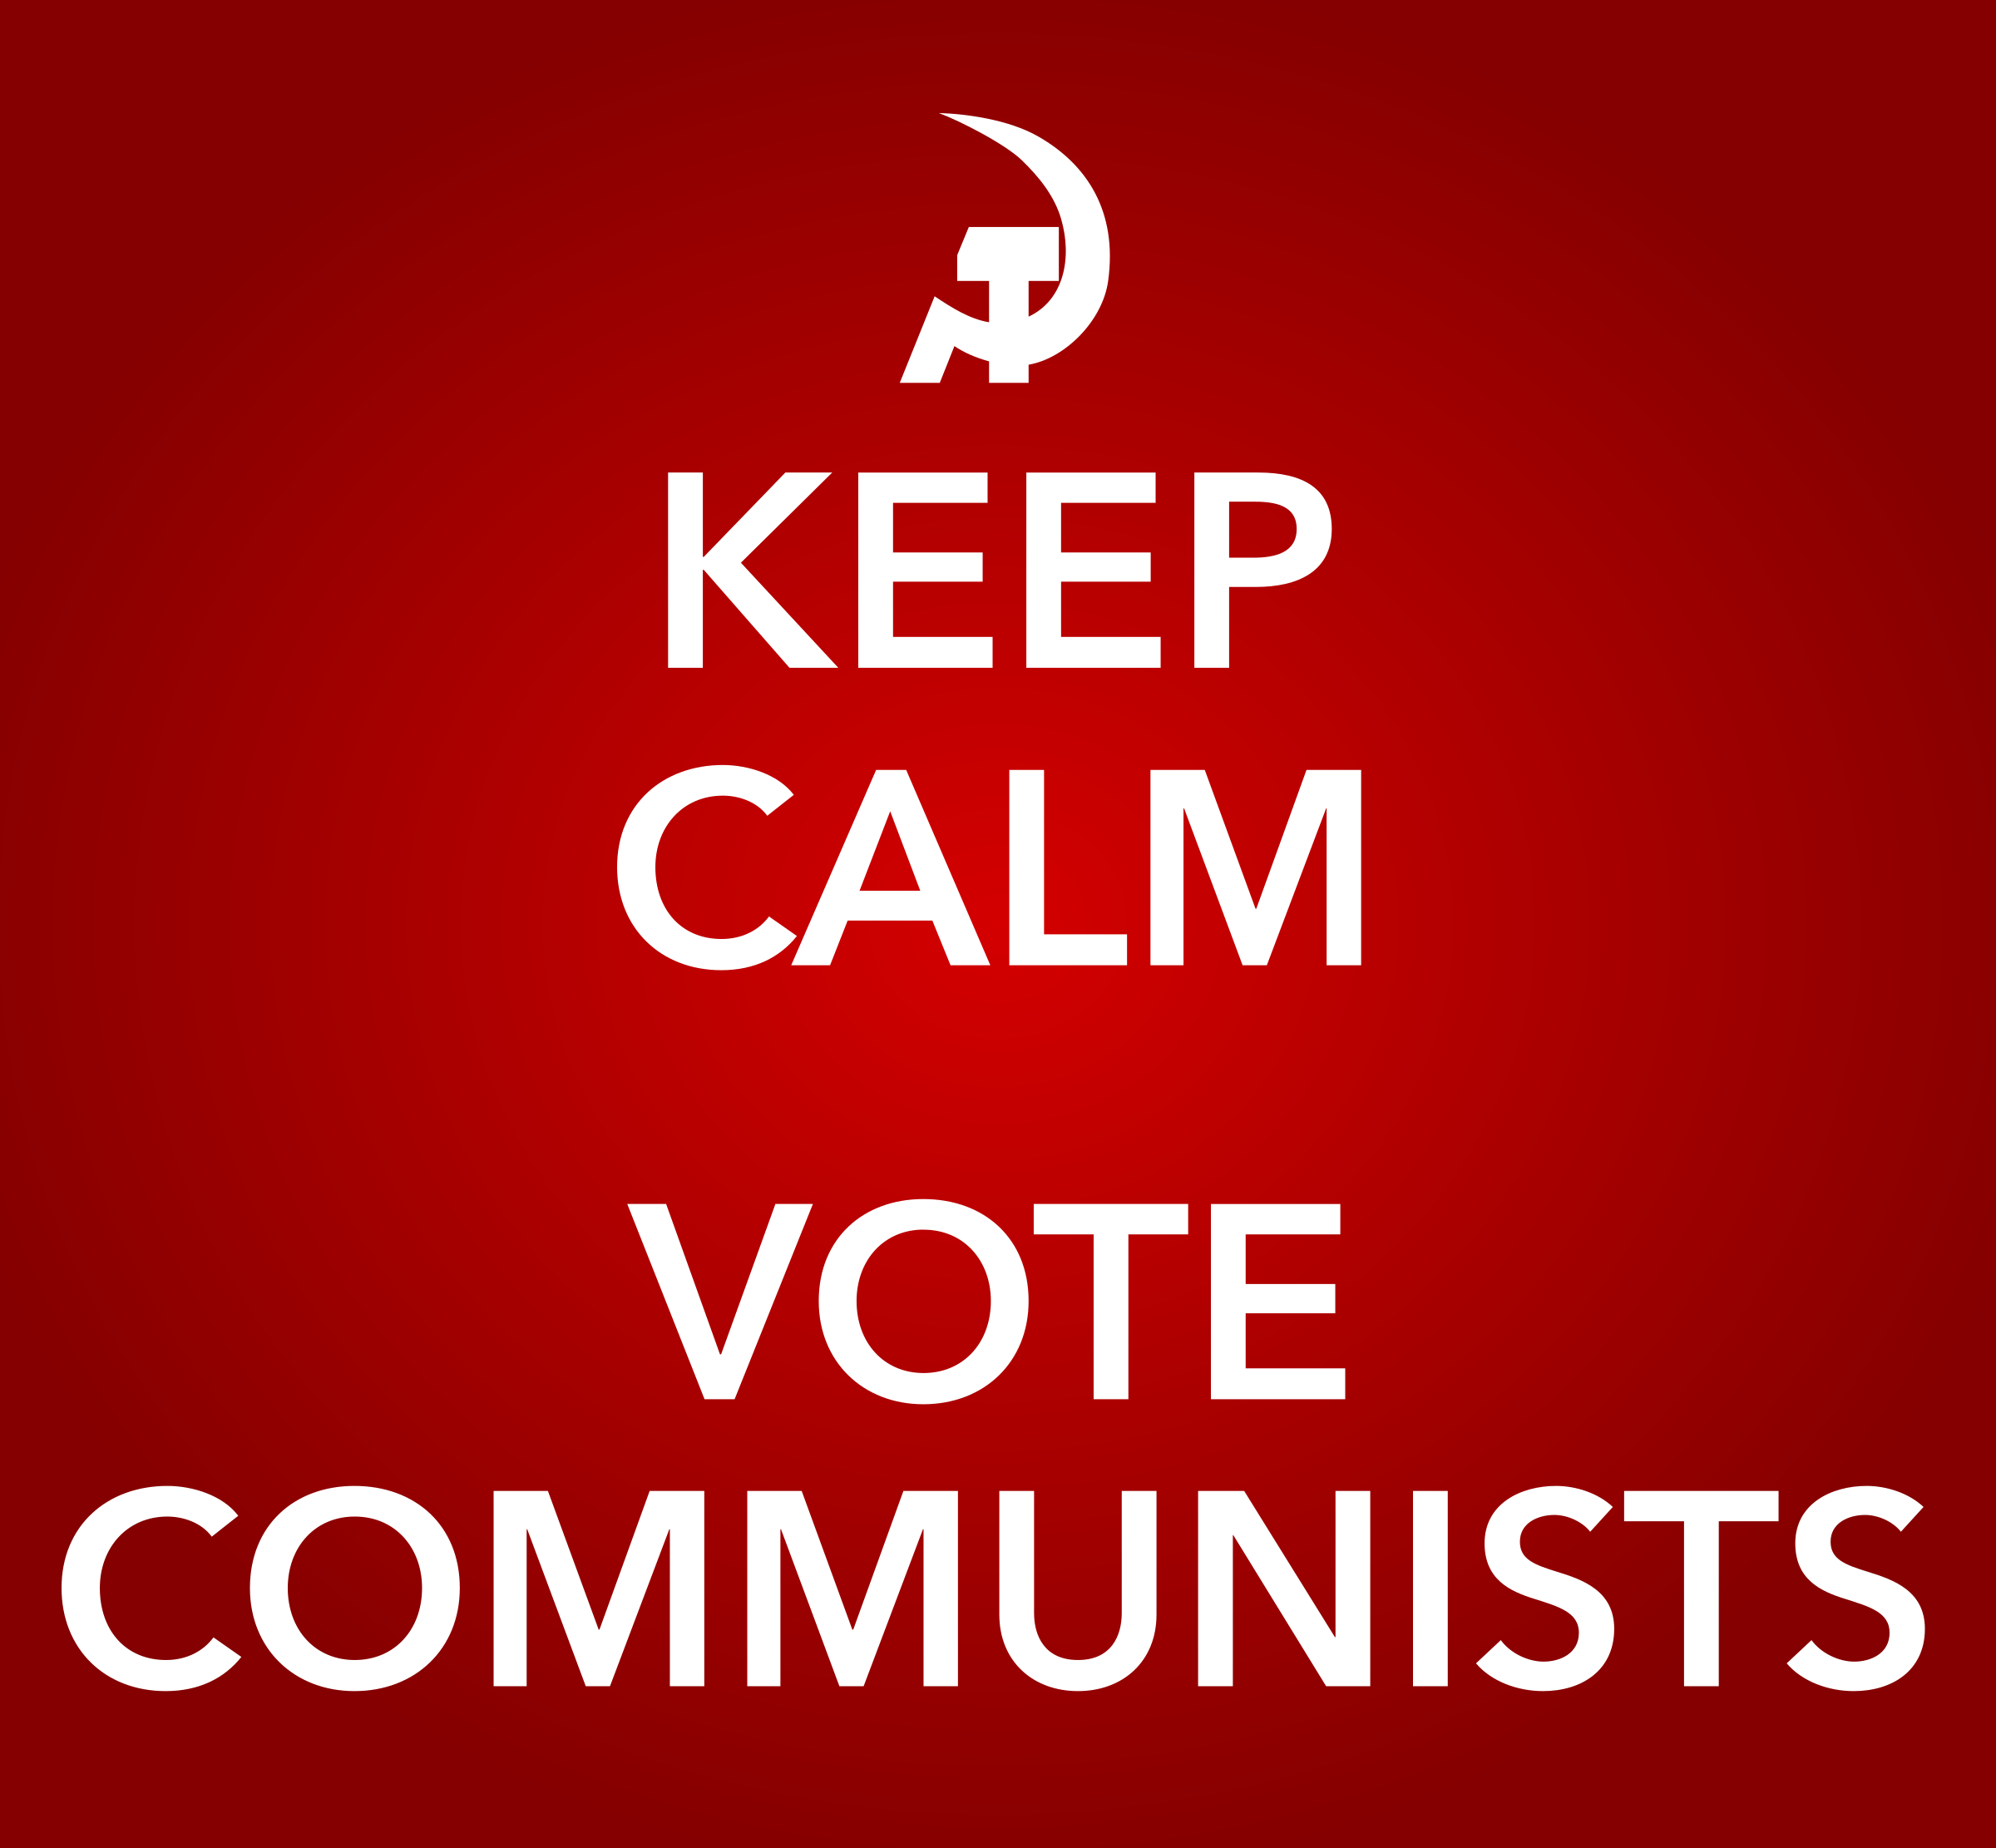 KEEP CALM AND VOTE COMMUNISTS by worker